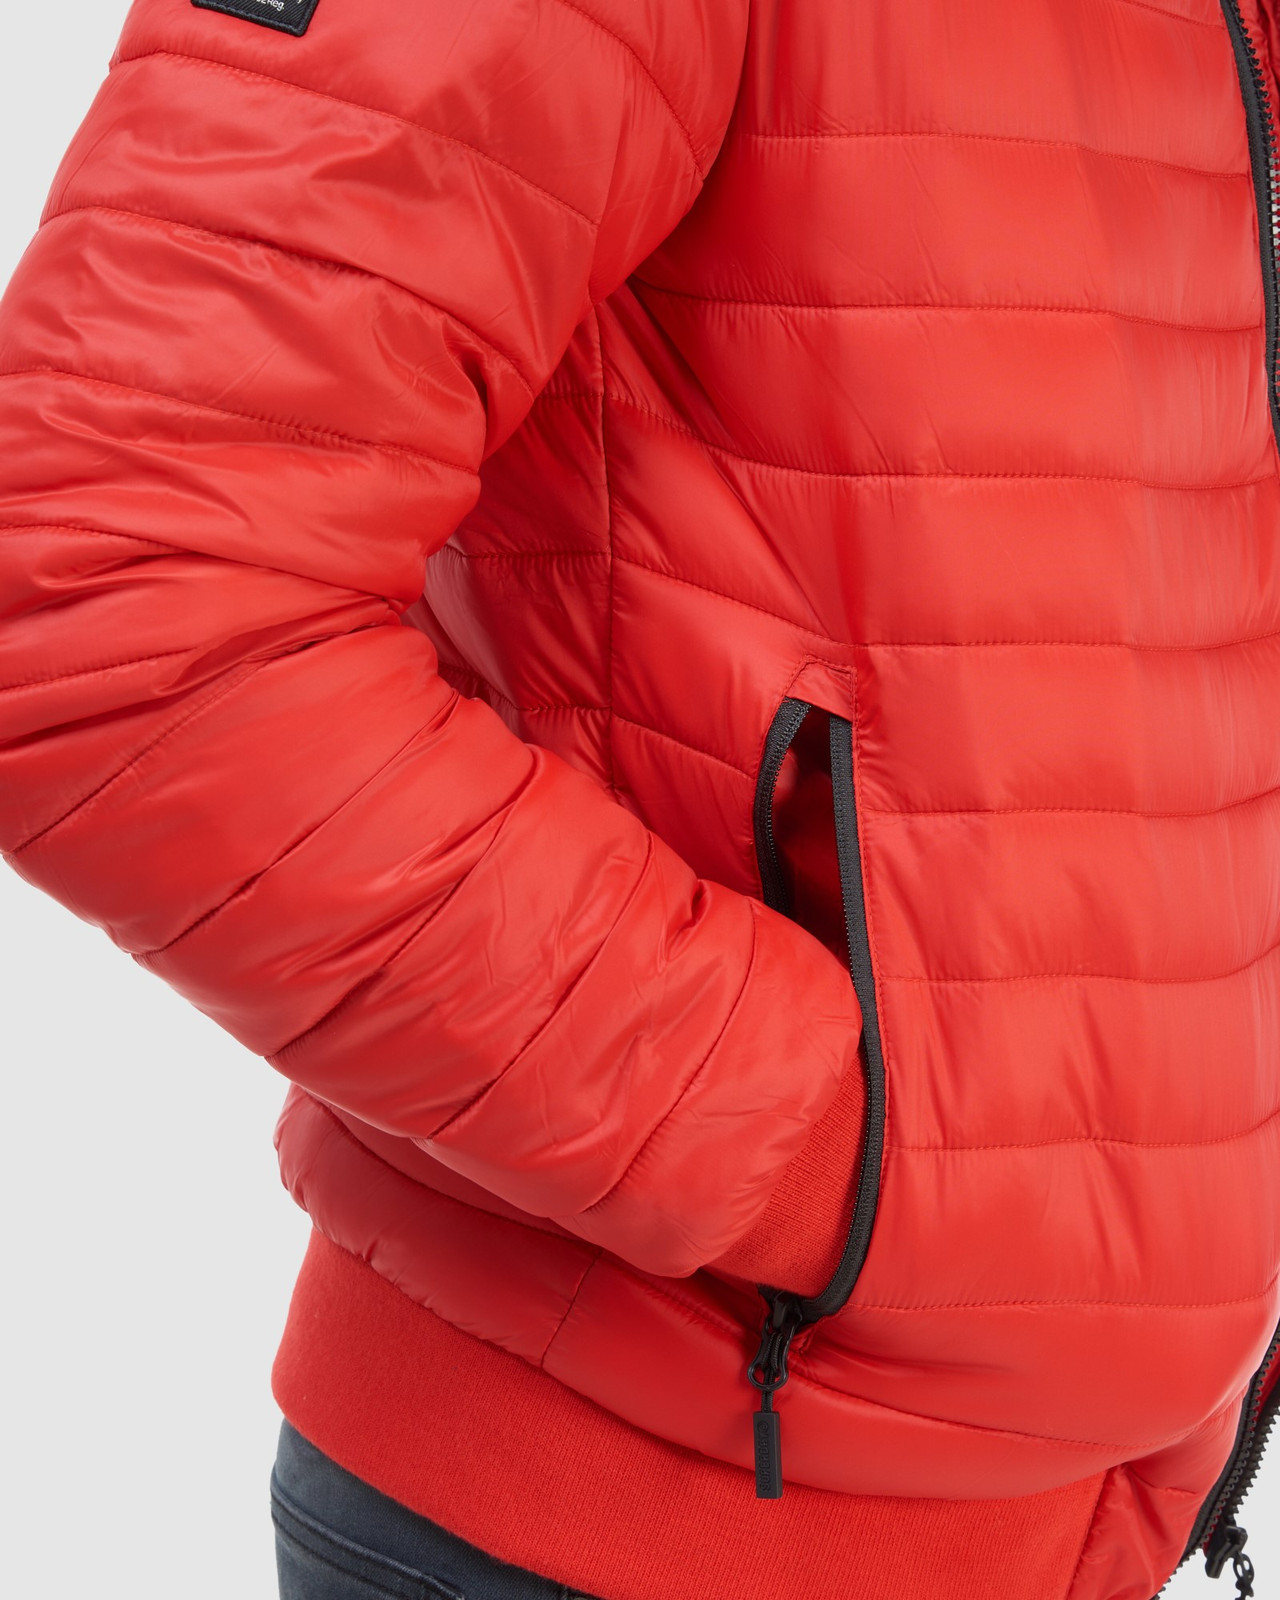 Superdry Mens FUJI BOMBER Red Puffer Jackets 15